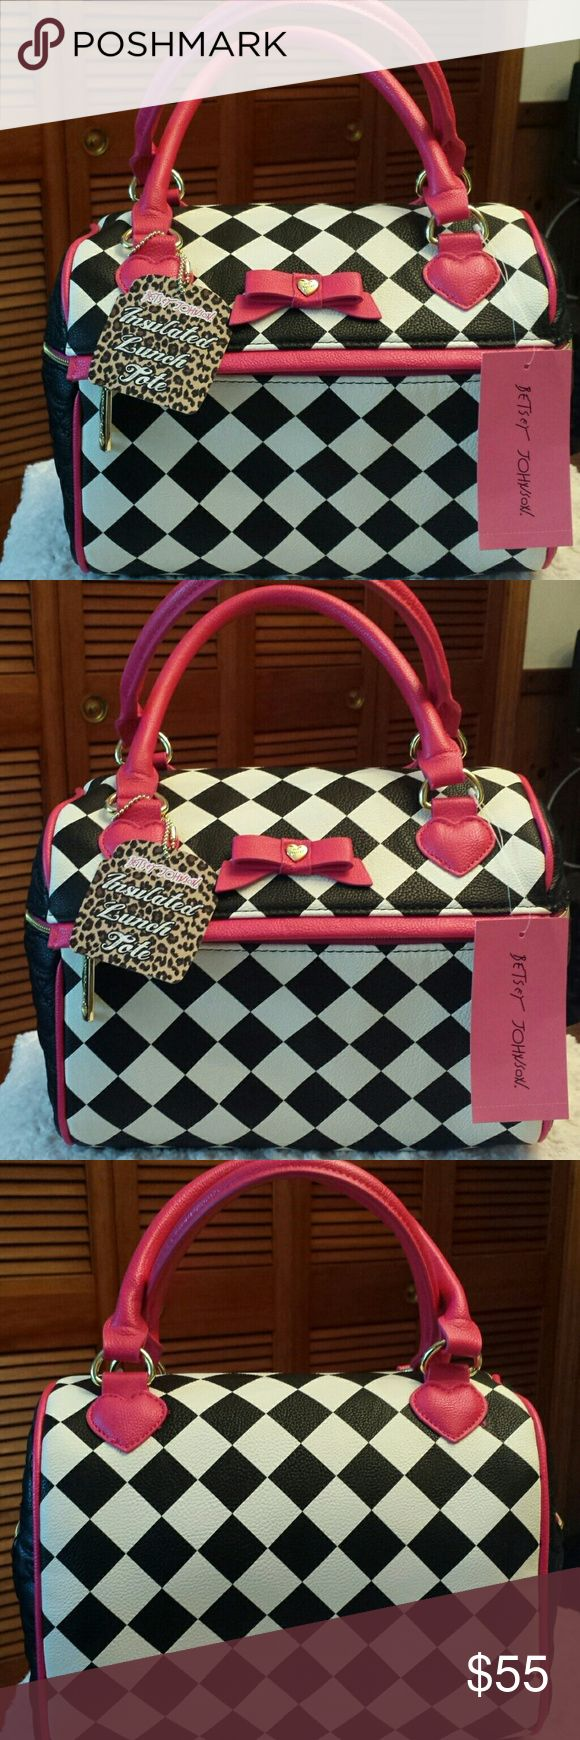 Betsy Johnson NWT Speedy Lunch Tote Betsy Johnson NWT Black, White And Red print Speedy Lunch Tote, Top Handles, Zippered Closure Betsy Johnson  Bags Totes